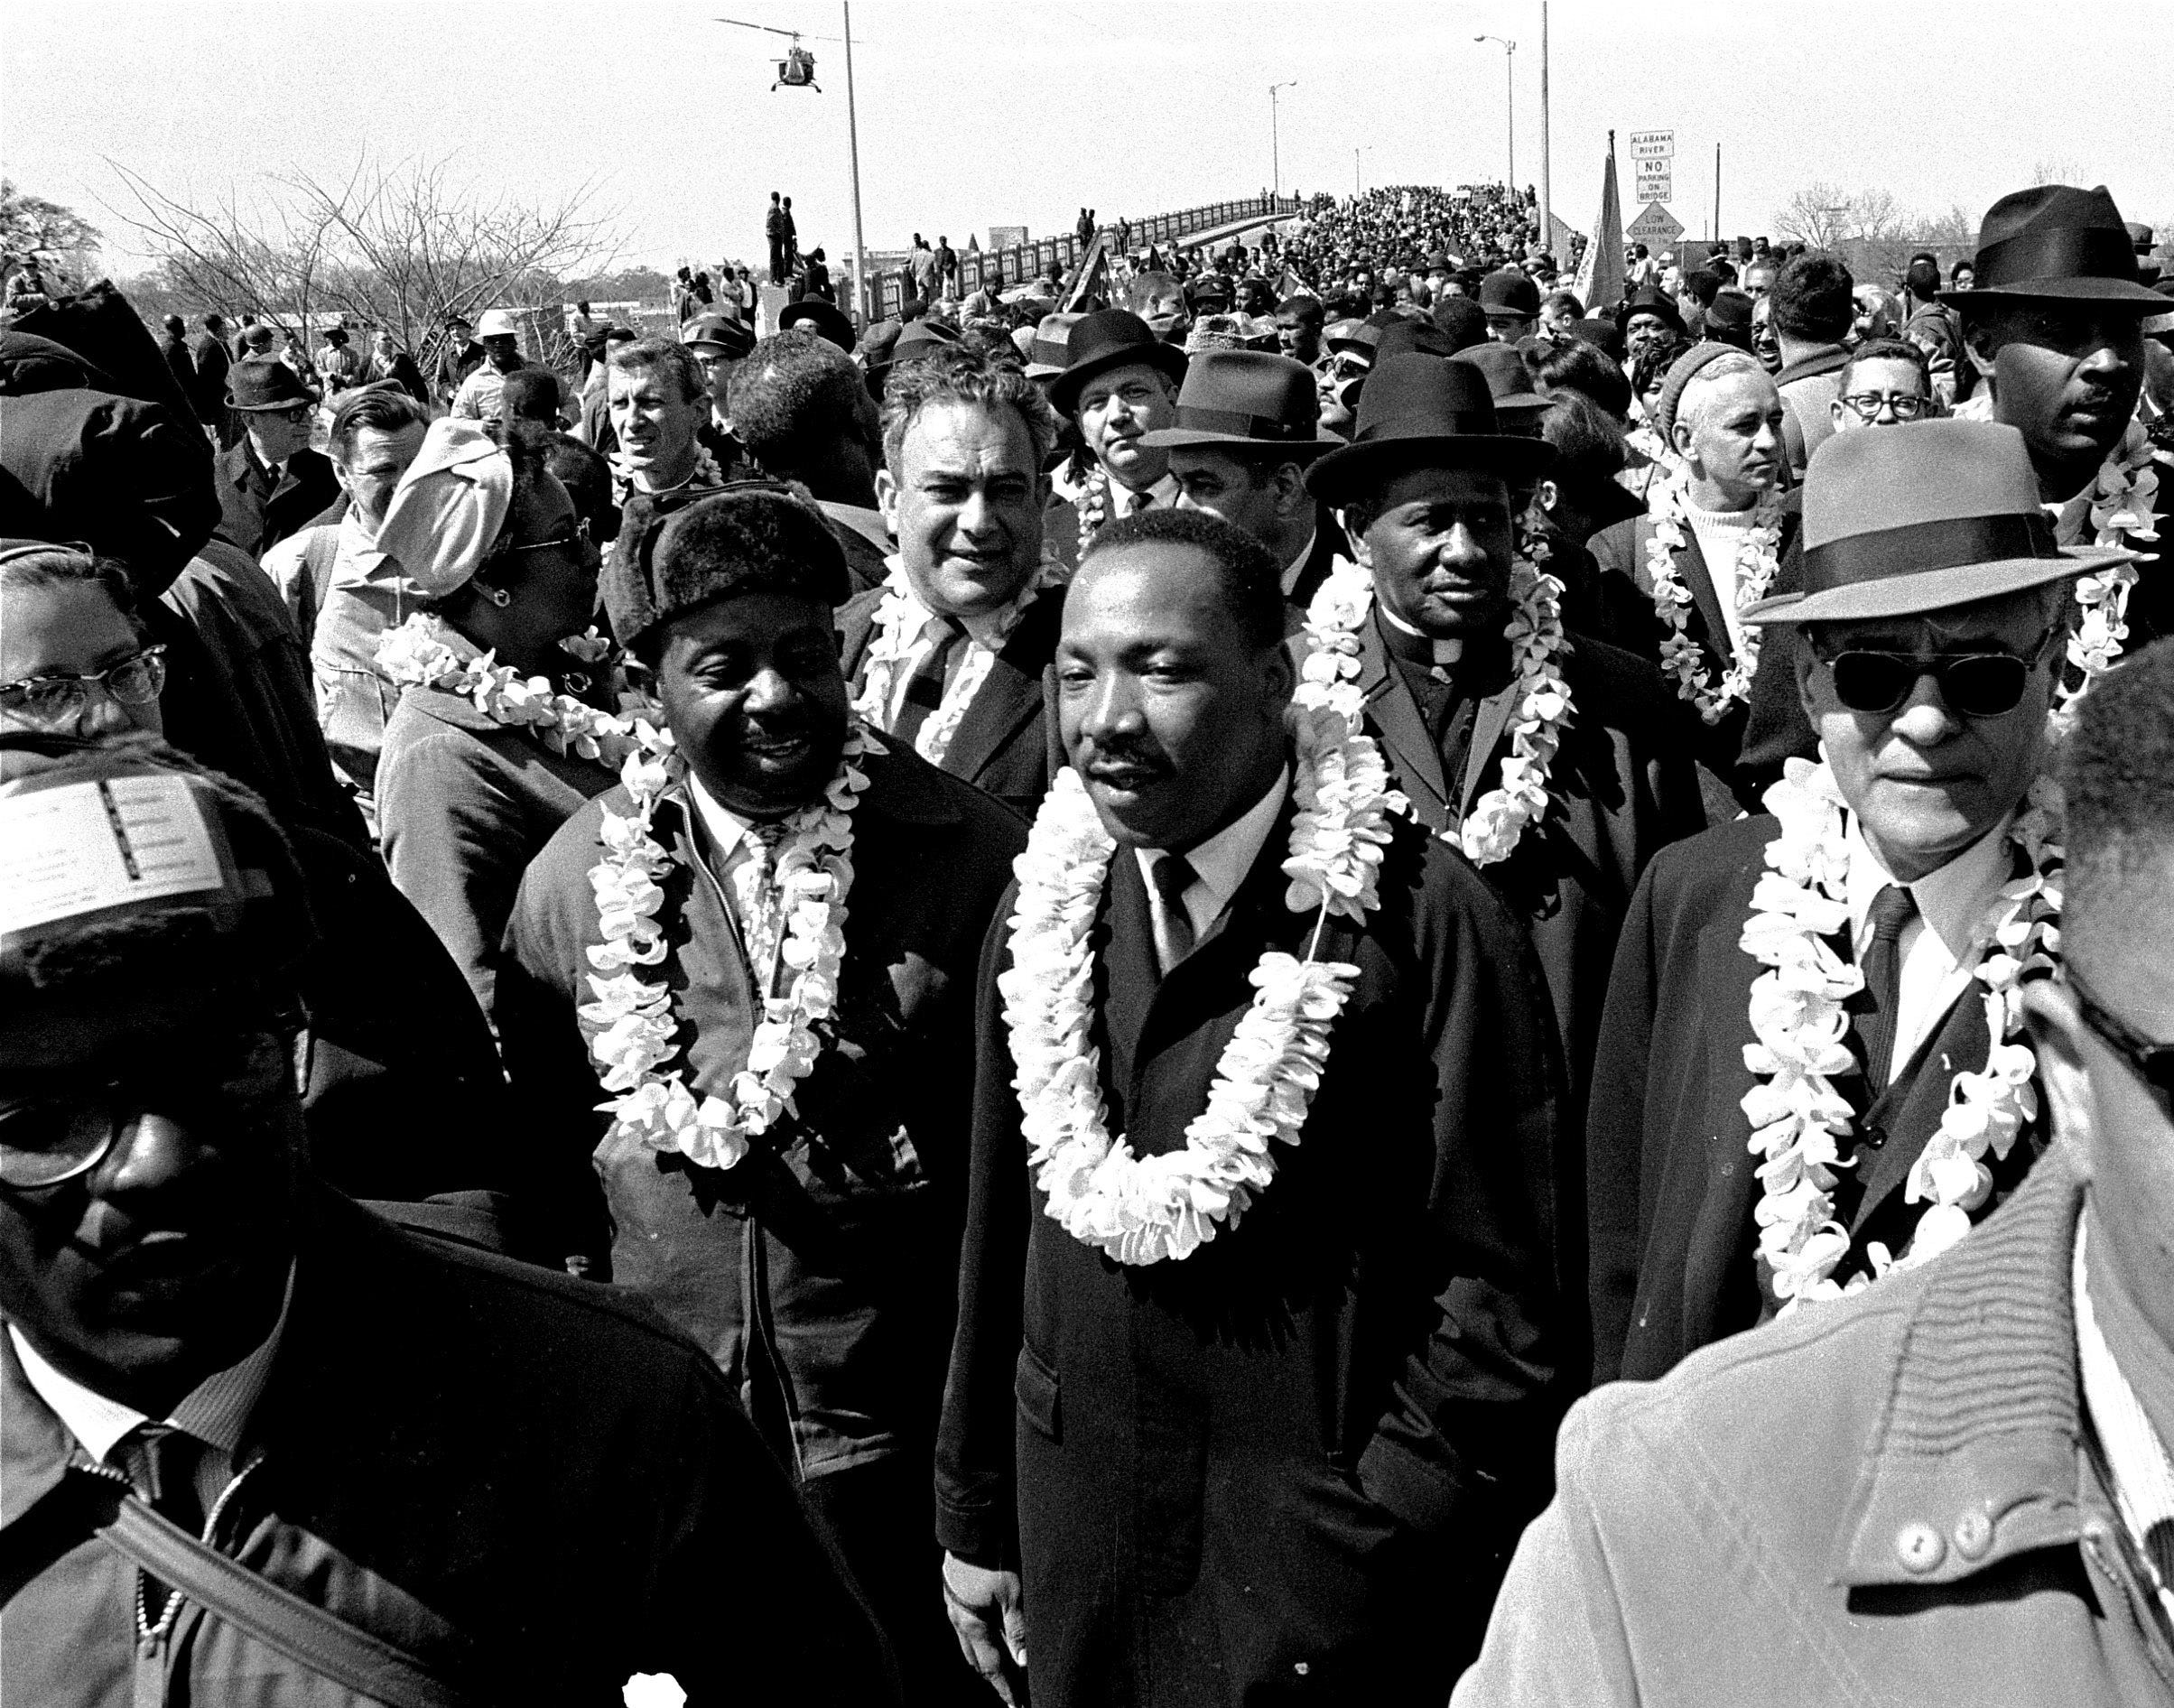 In this March 21, 1965 file photo, Martin Luther King, Jr. and his civil rights marchers cross the Edmund Pettus Bridge in Selma, Ala., heading for capitol, Montgomery, during a five day, 50 mile walk to protest voting laws.